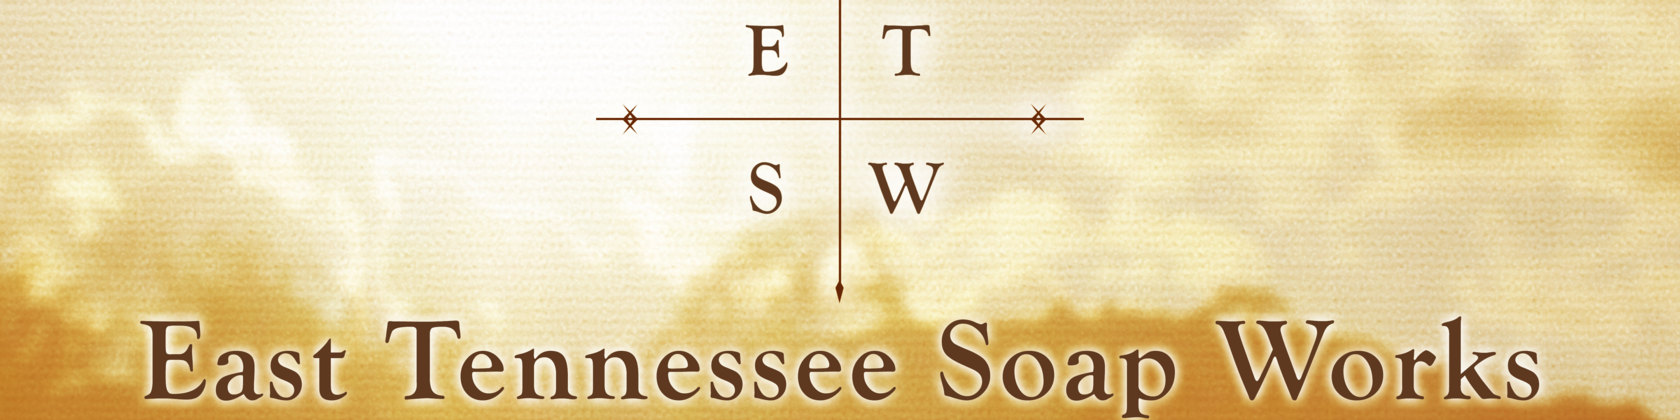 East Tennessee Soap Works